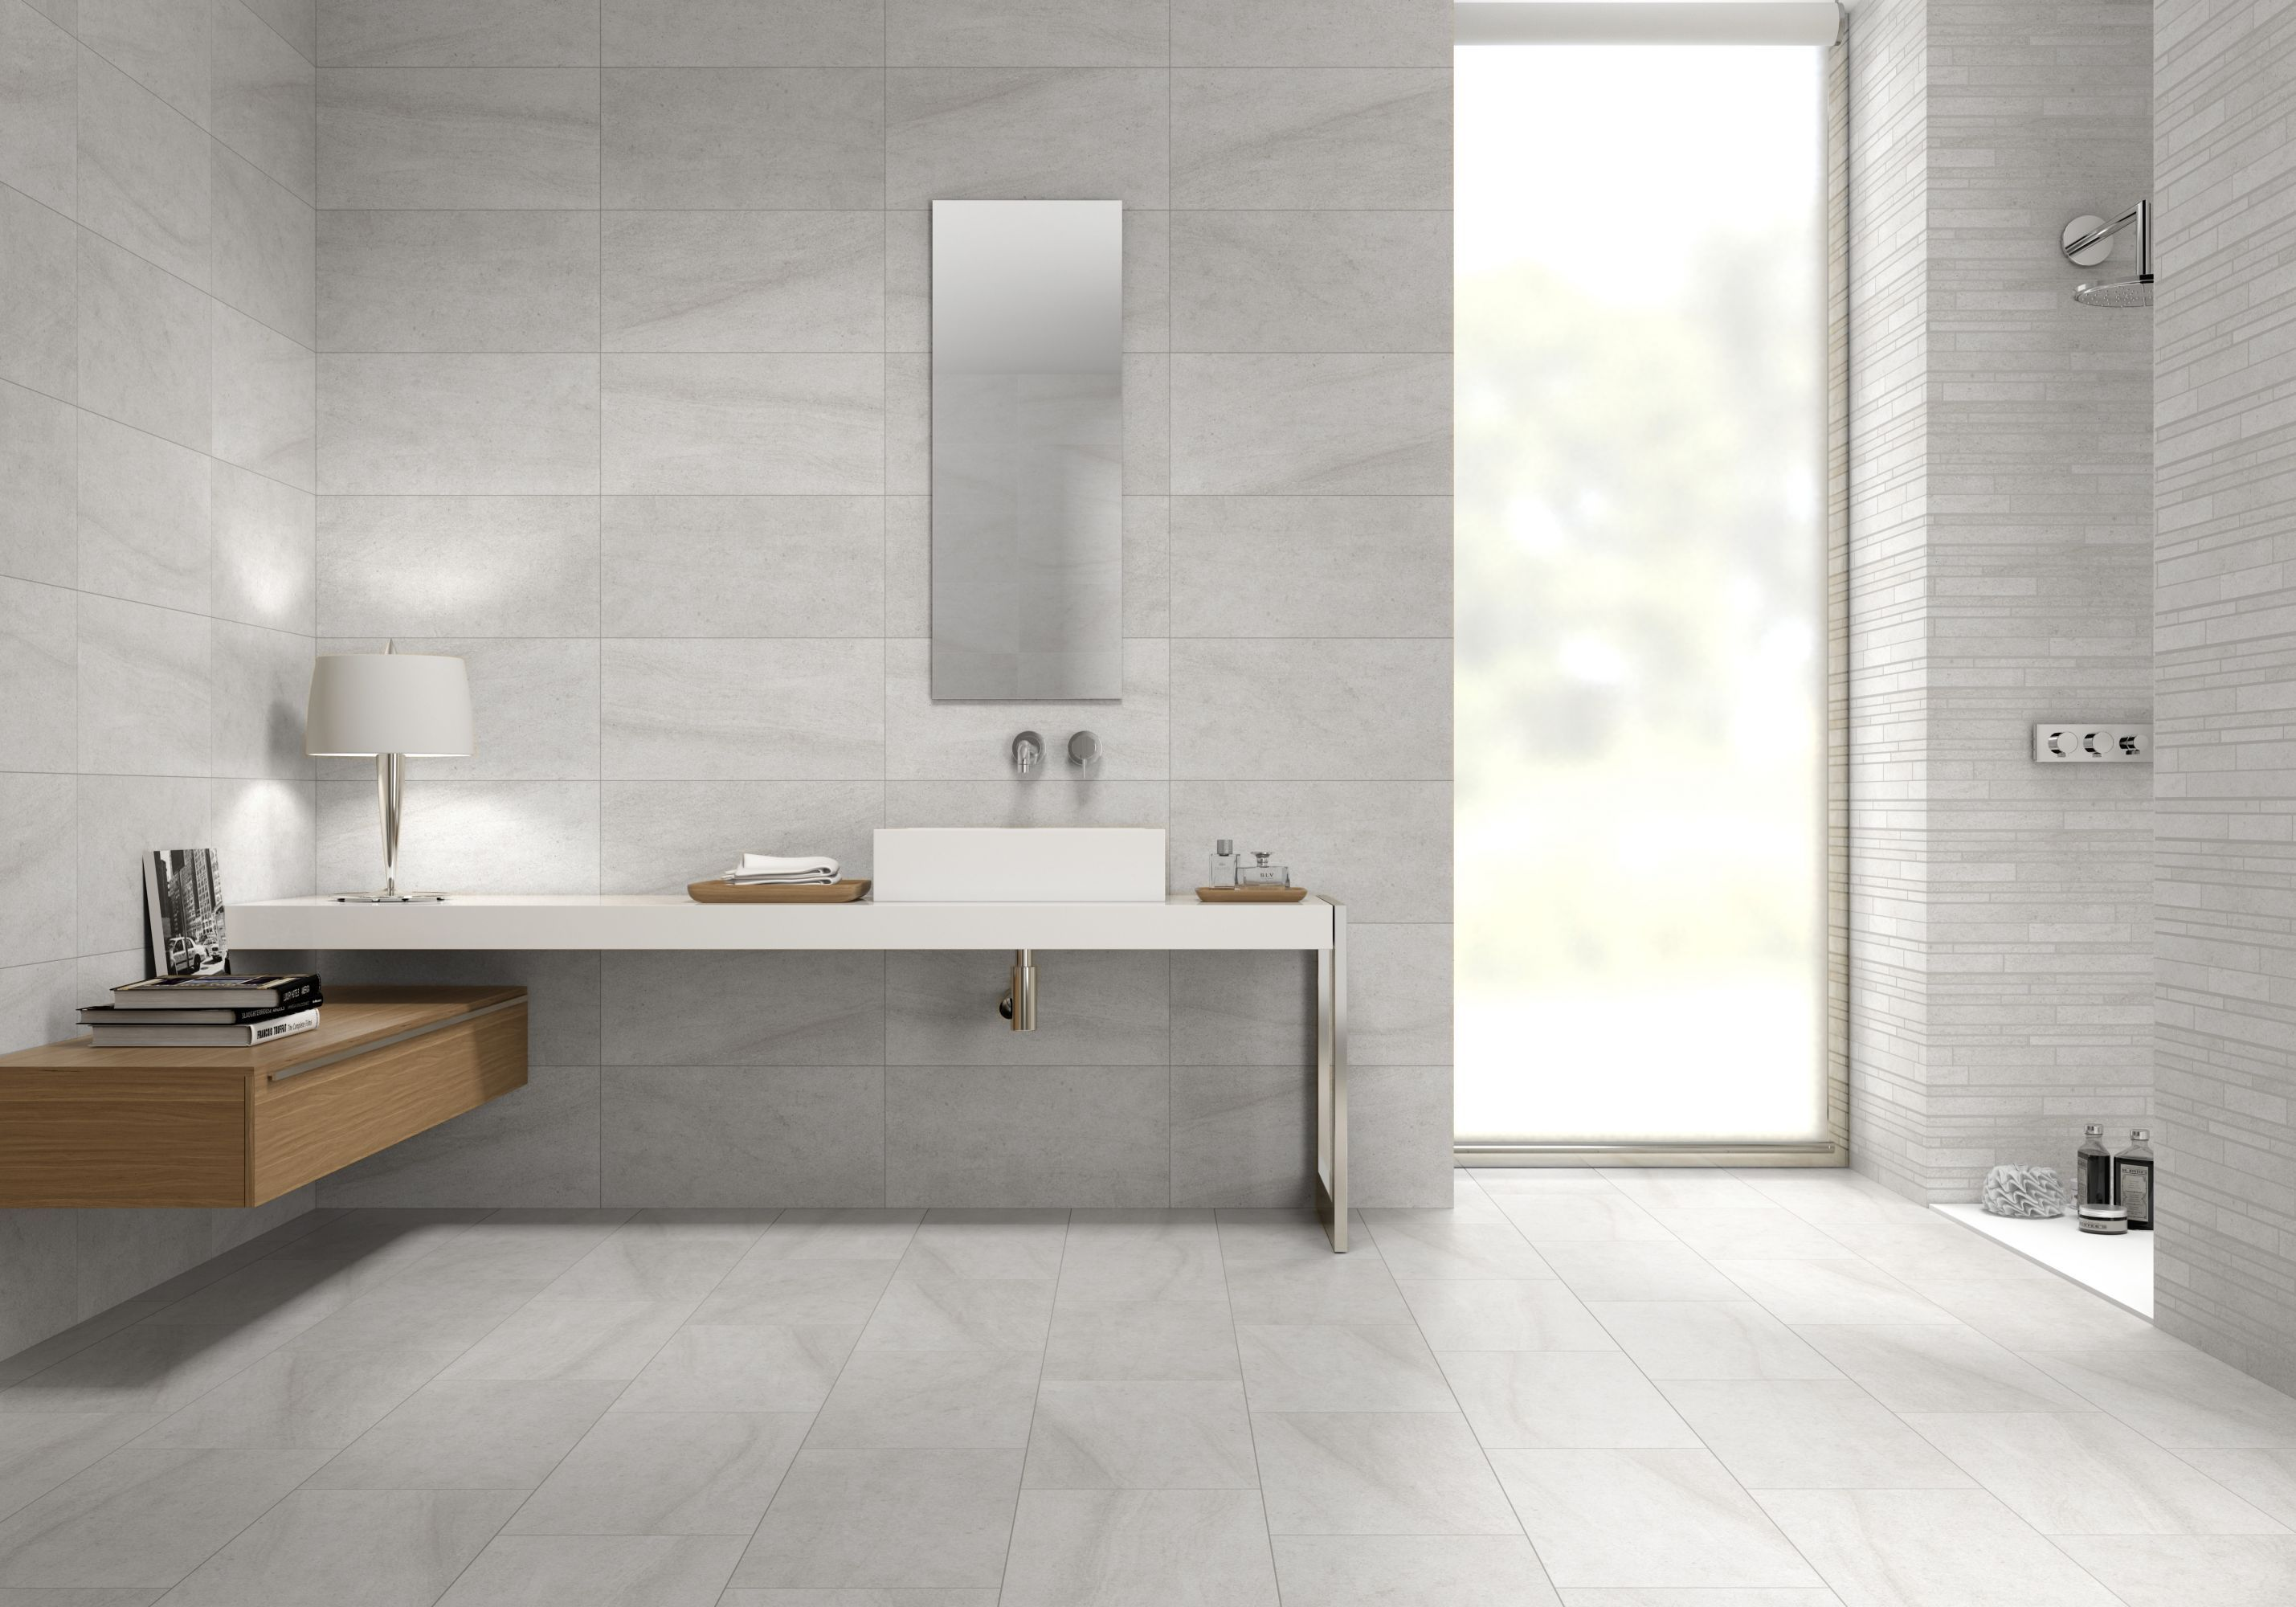 600 x 300 tile patterns - Google Search | Bathrooms | Pinterest ...